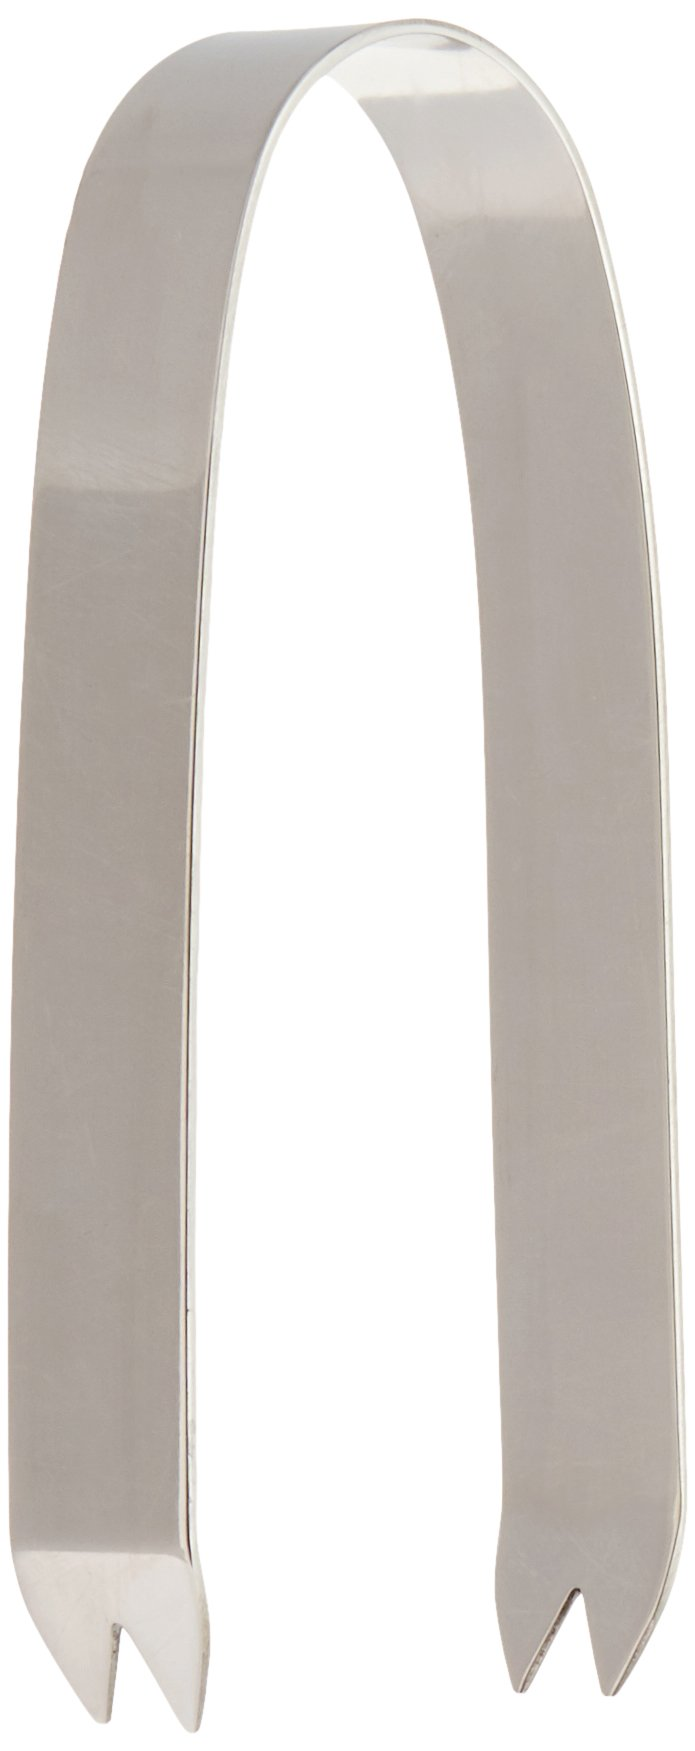 Mod18 Steelworks SM-02 6'' Ice Tong, Polished Stainless